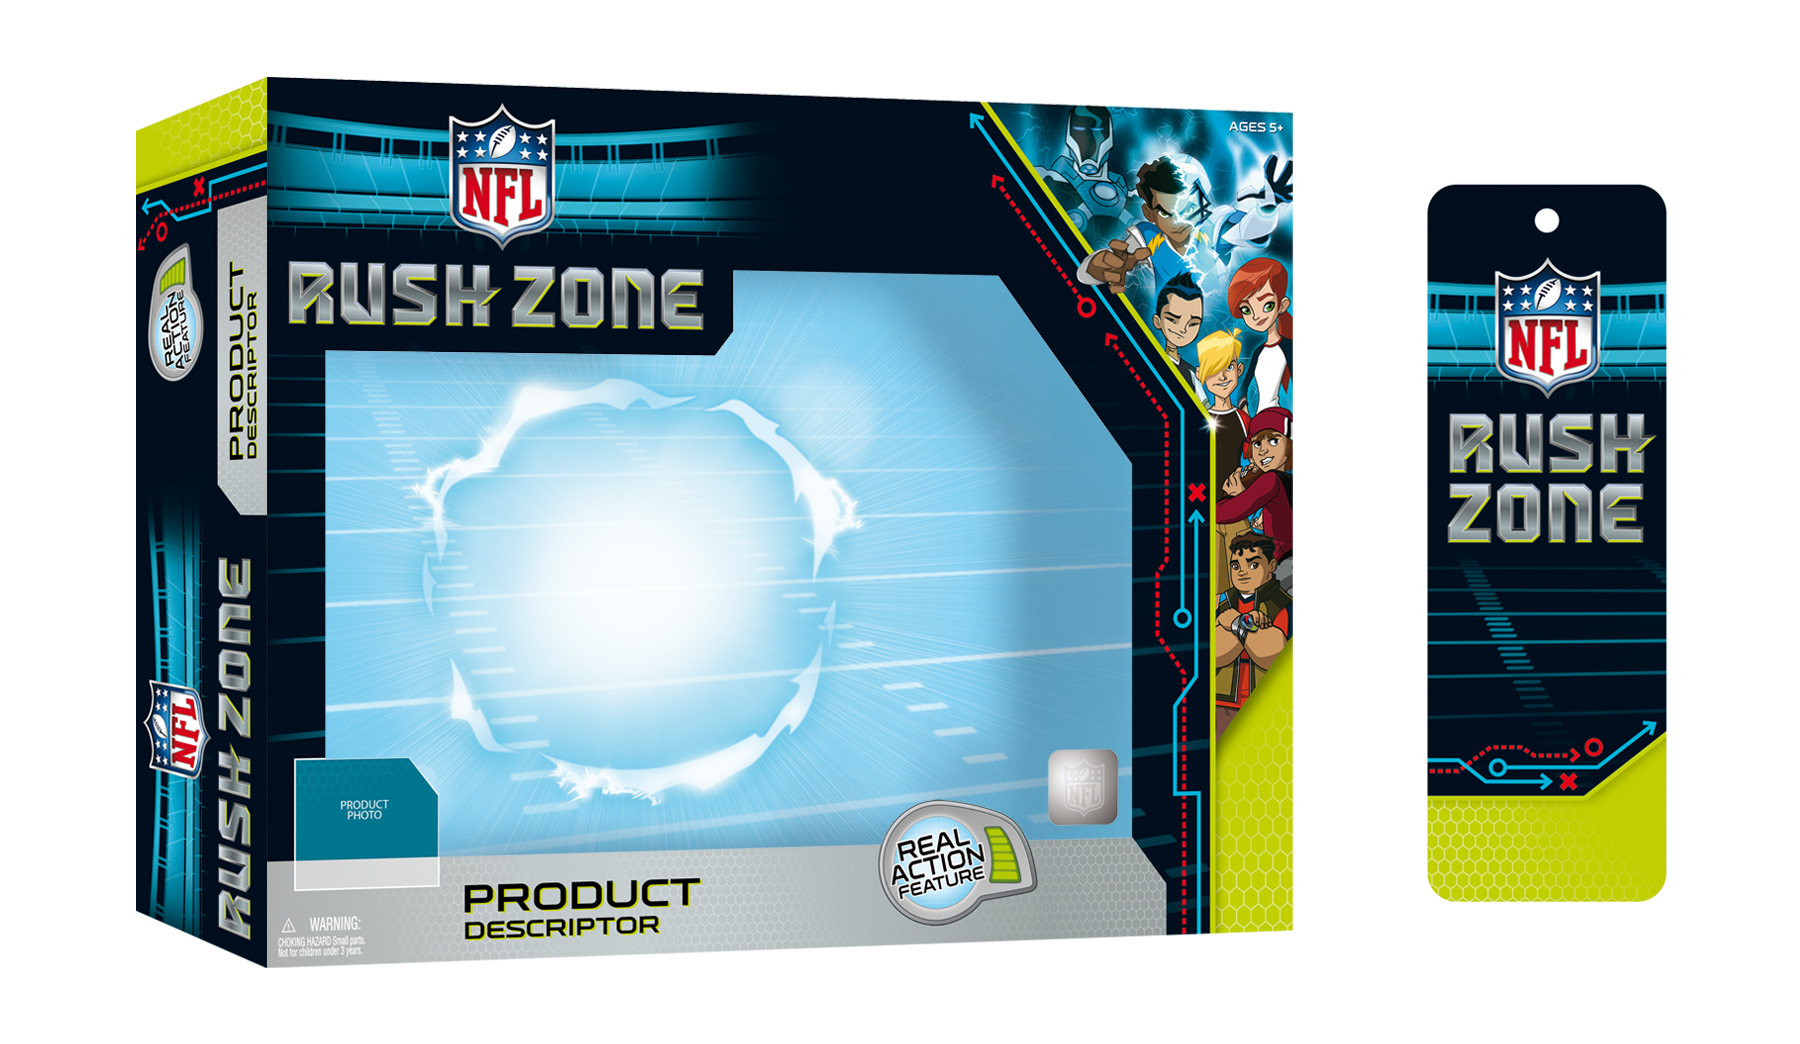 NFL Rush Zone Packaging - Package Design 2